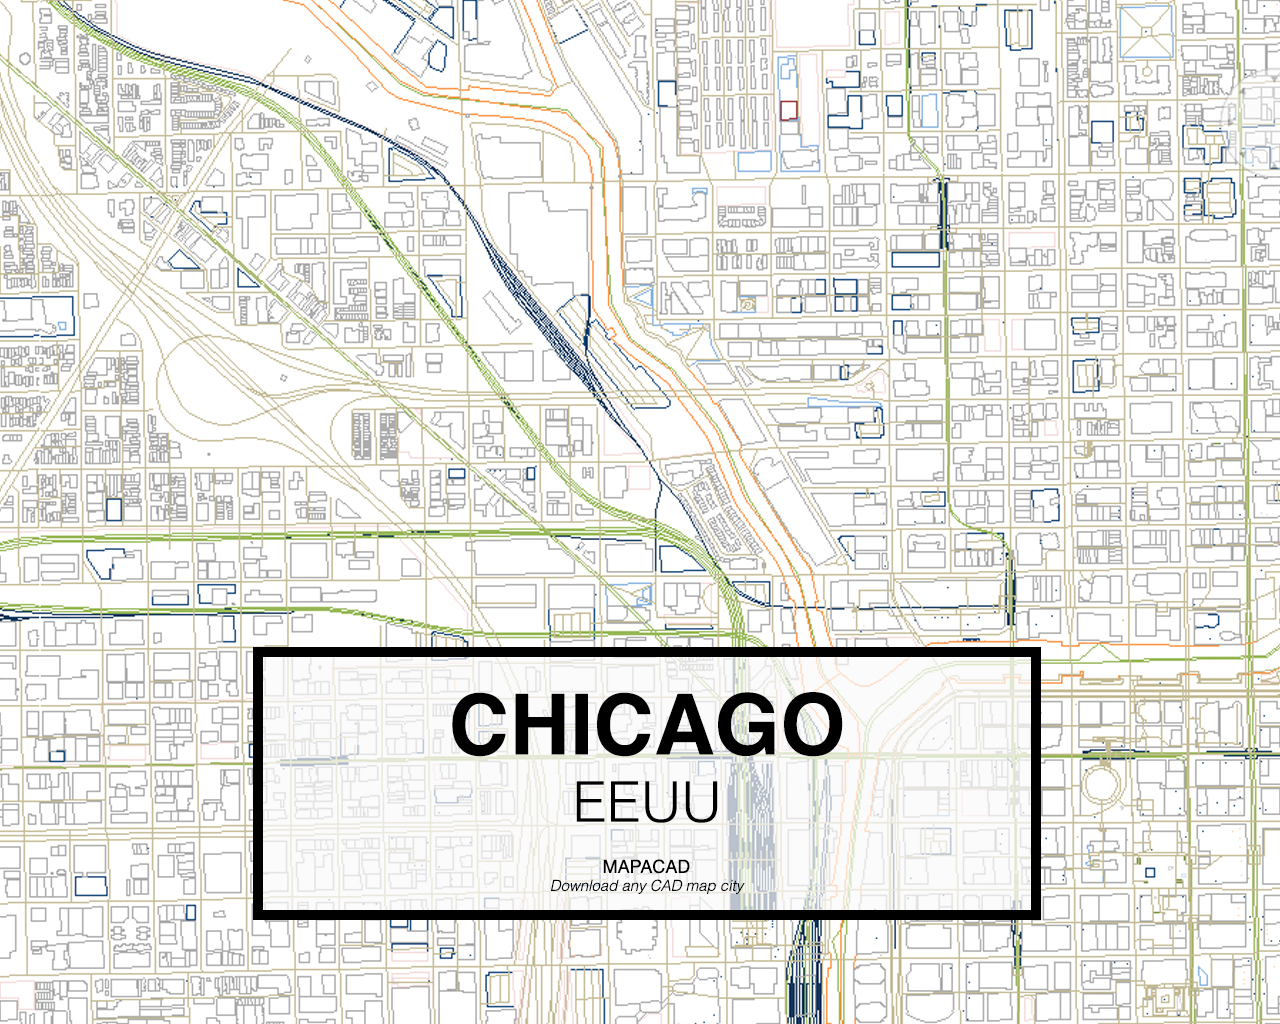 Download Chicago DWG Mapacad - Chicago map download